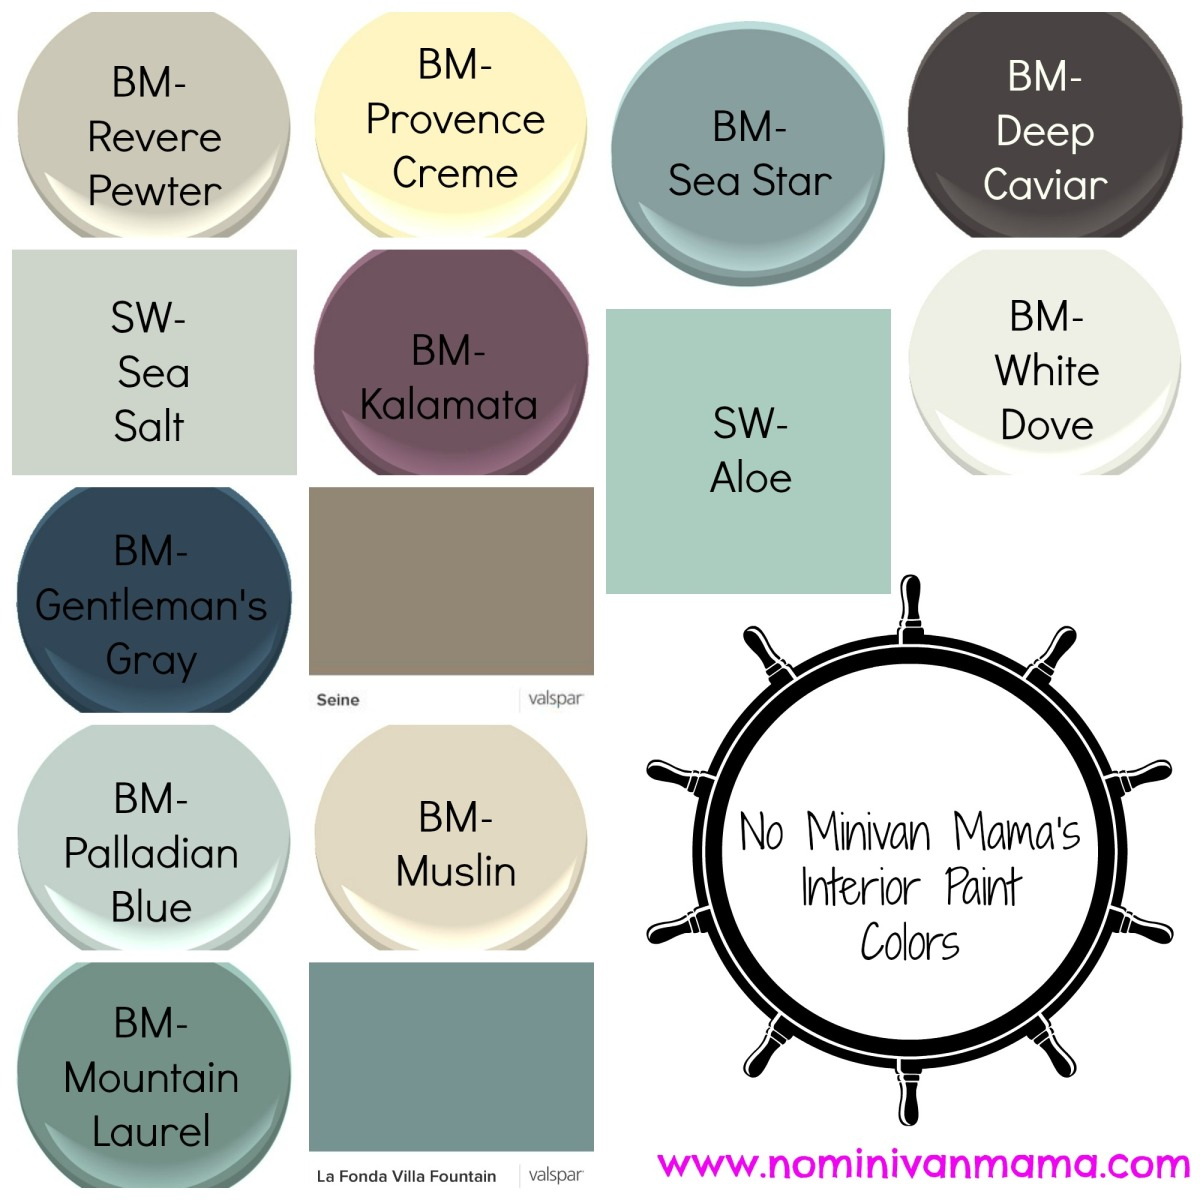 InteriorPaintColors